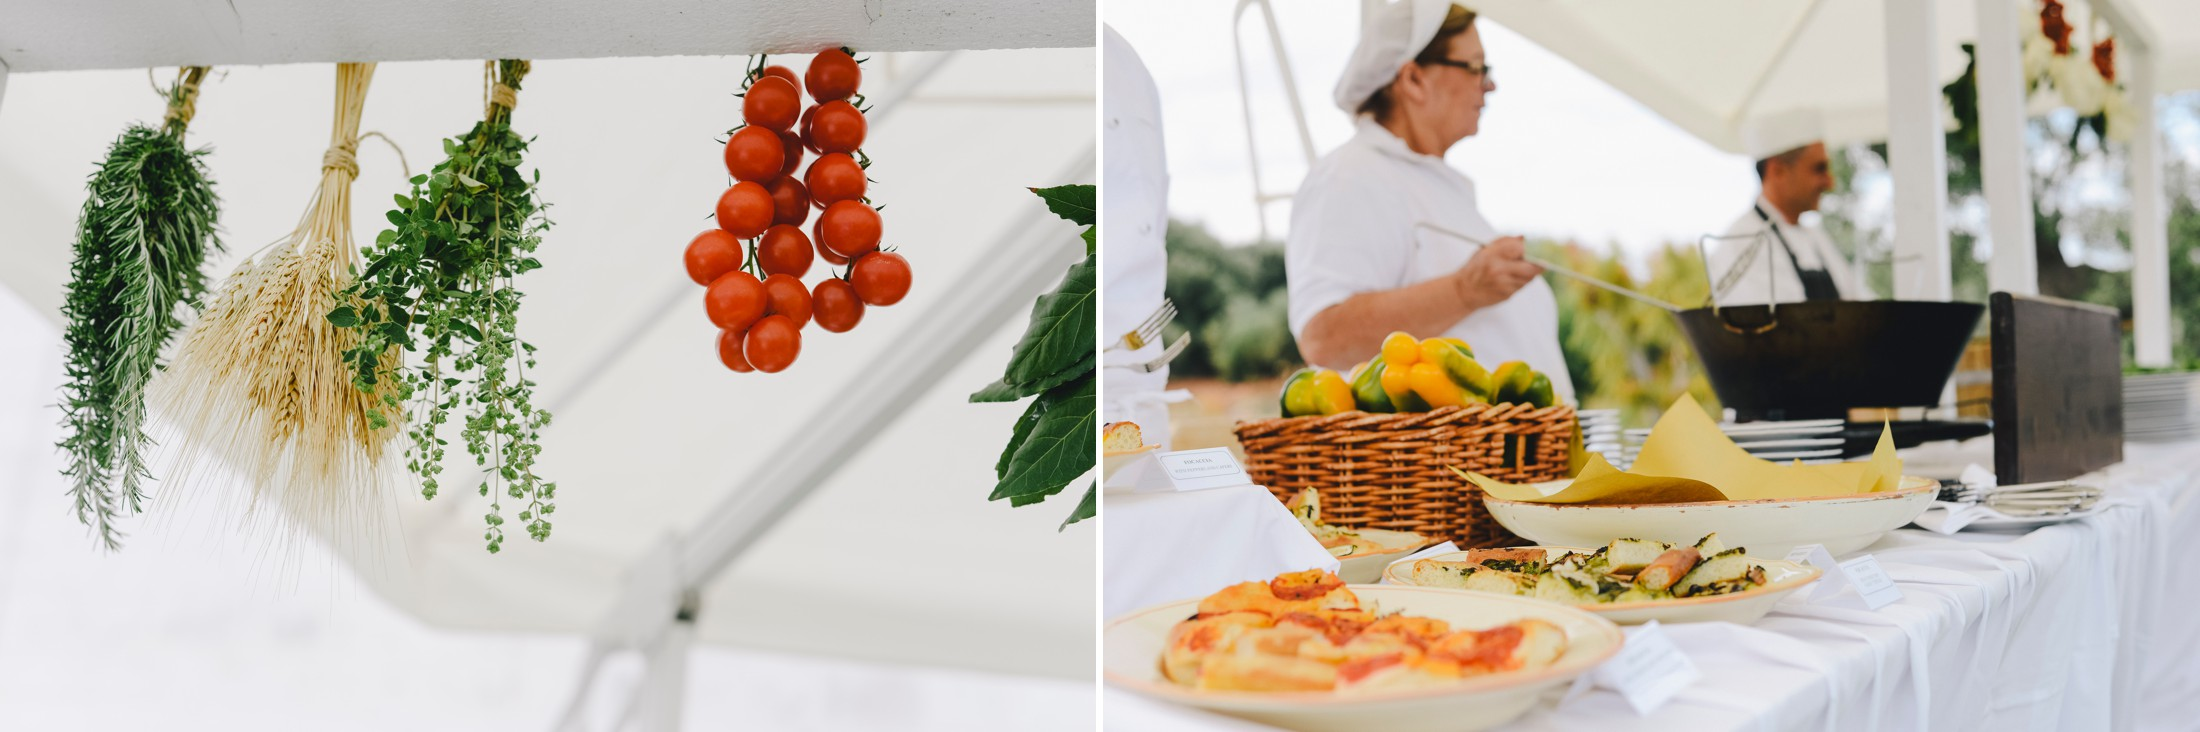 collage wedding canapé at masseria san domenico